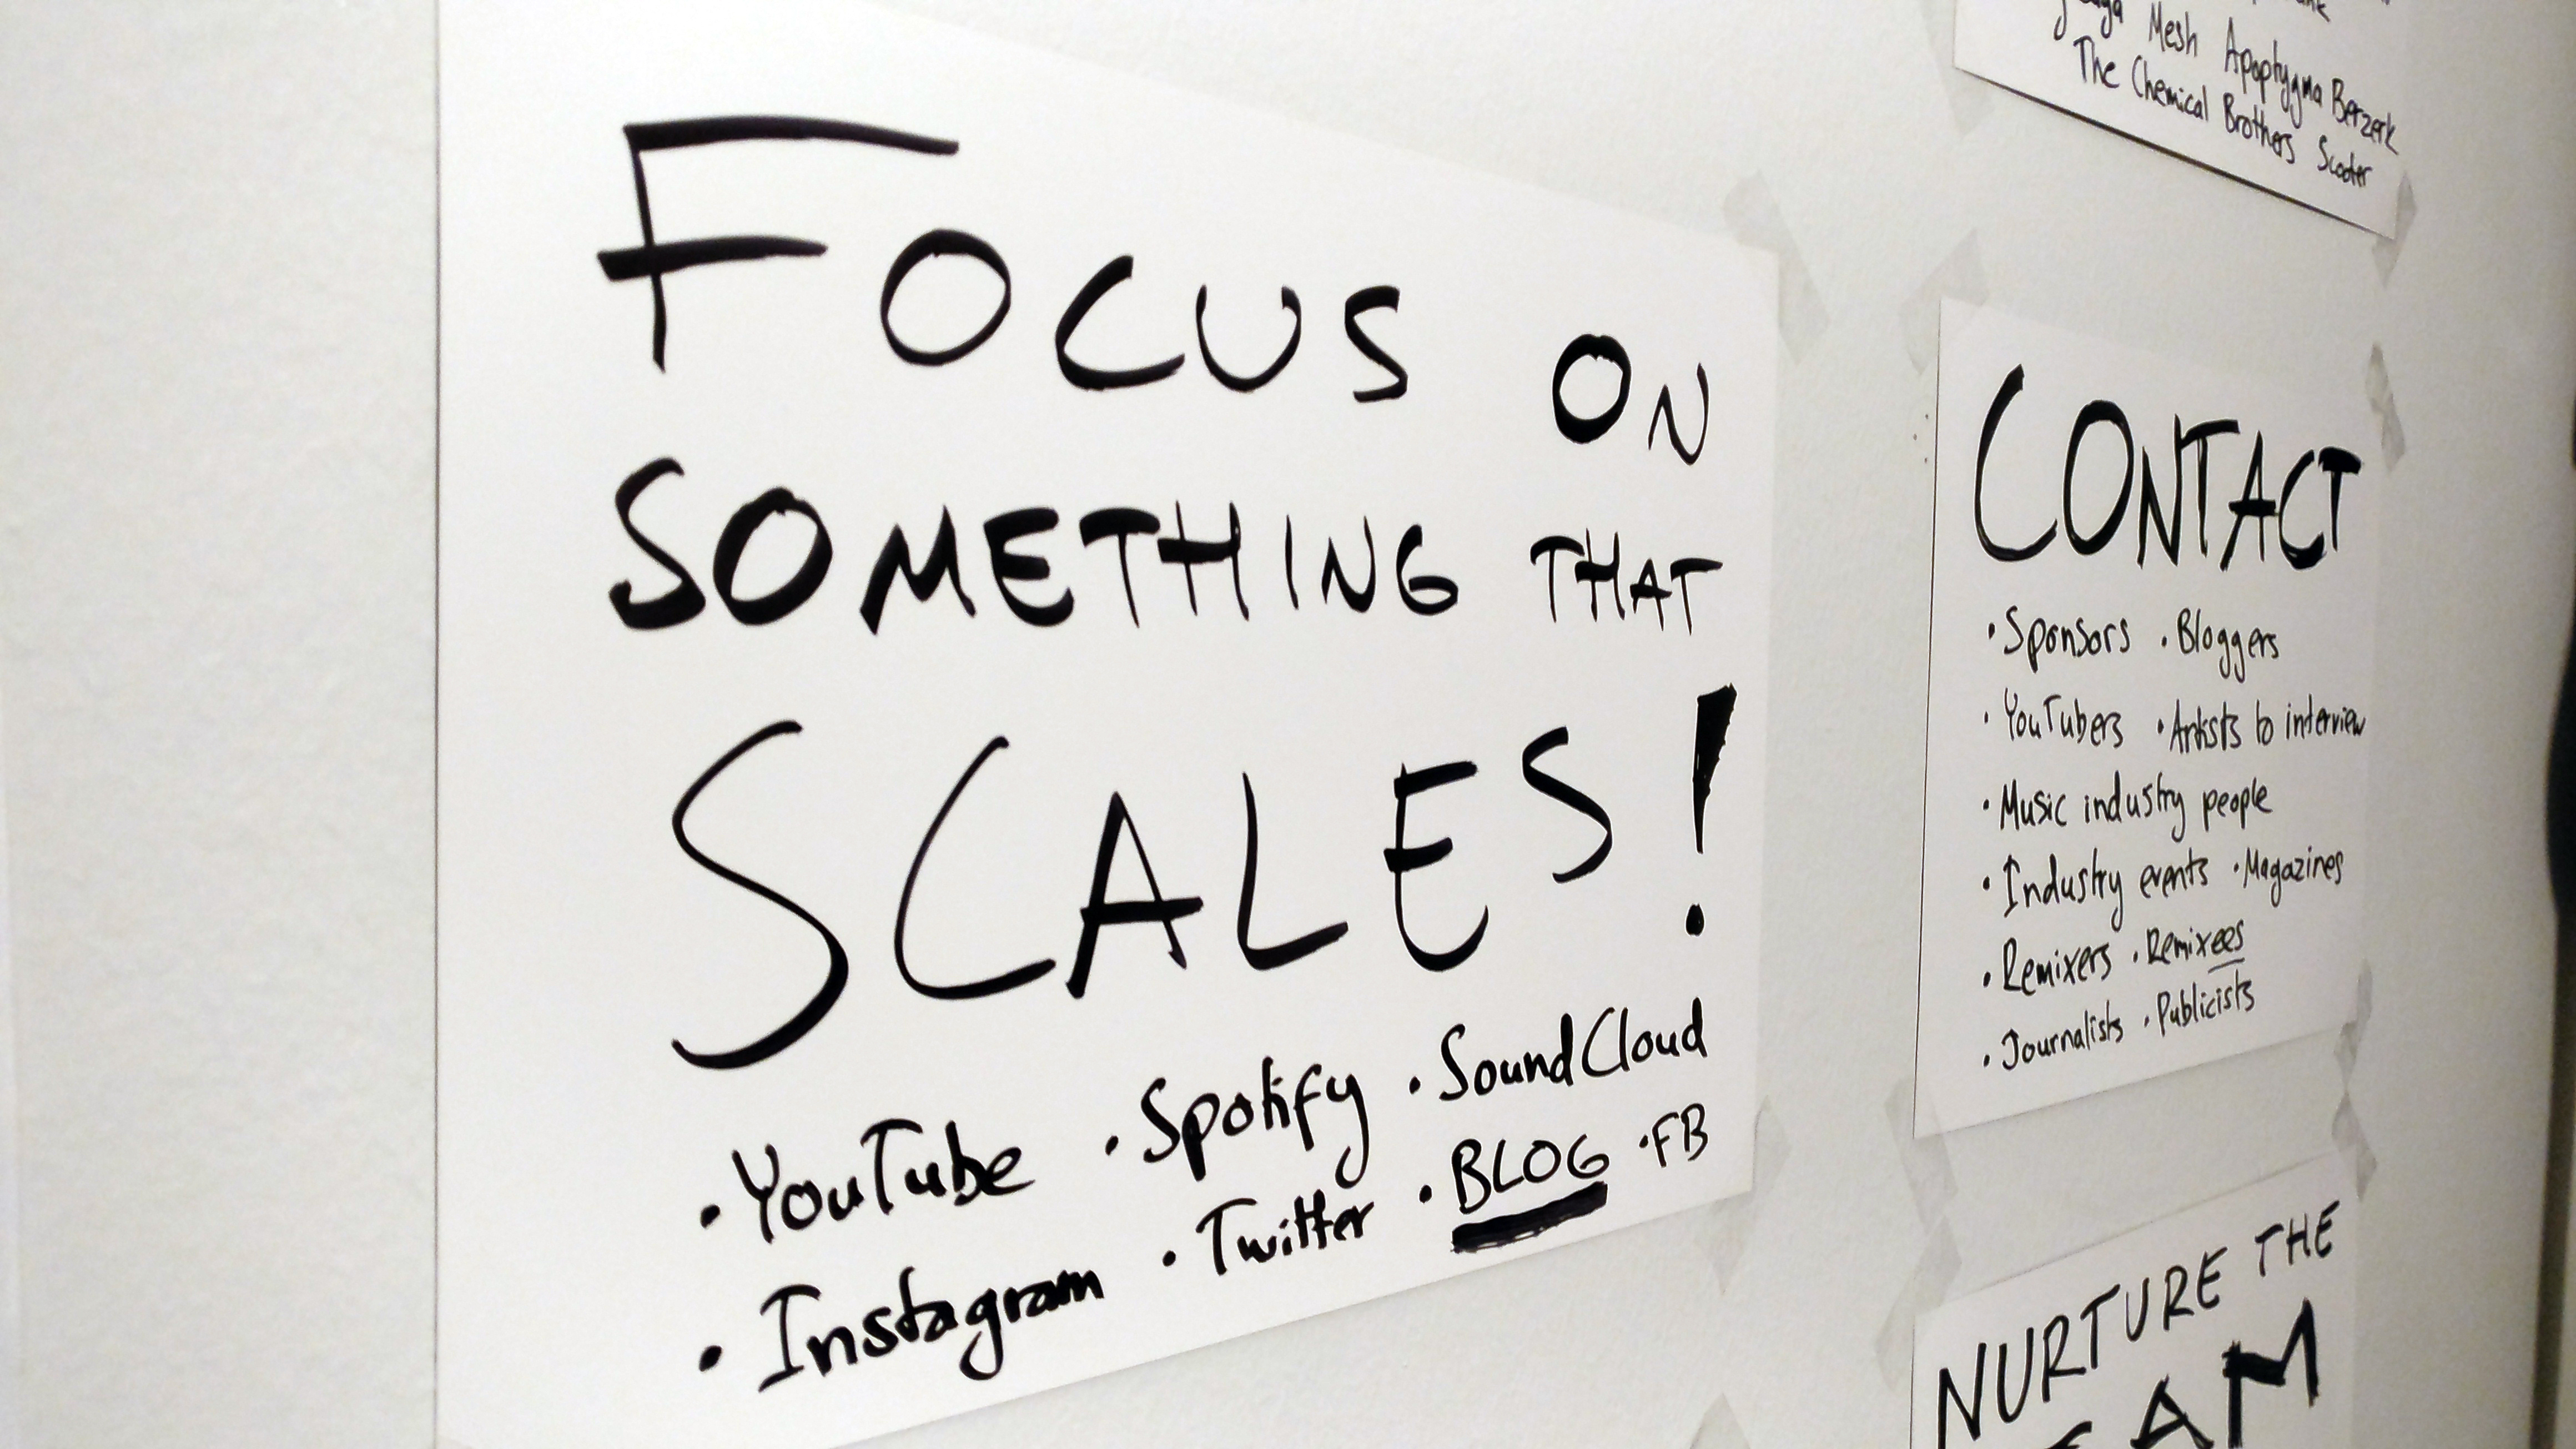 Focus on doing something that scales